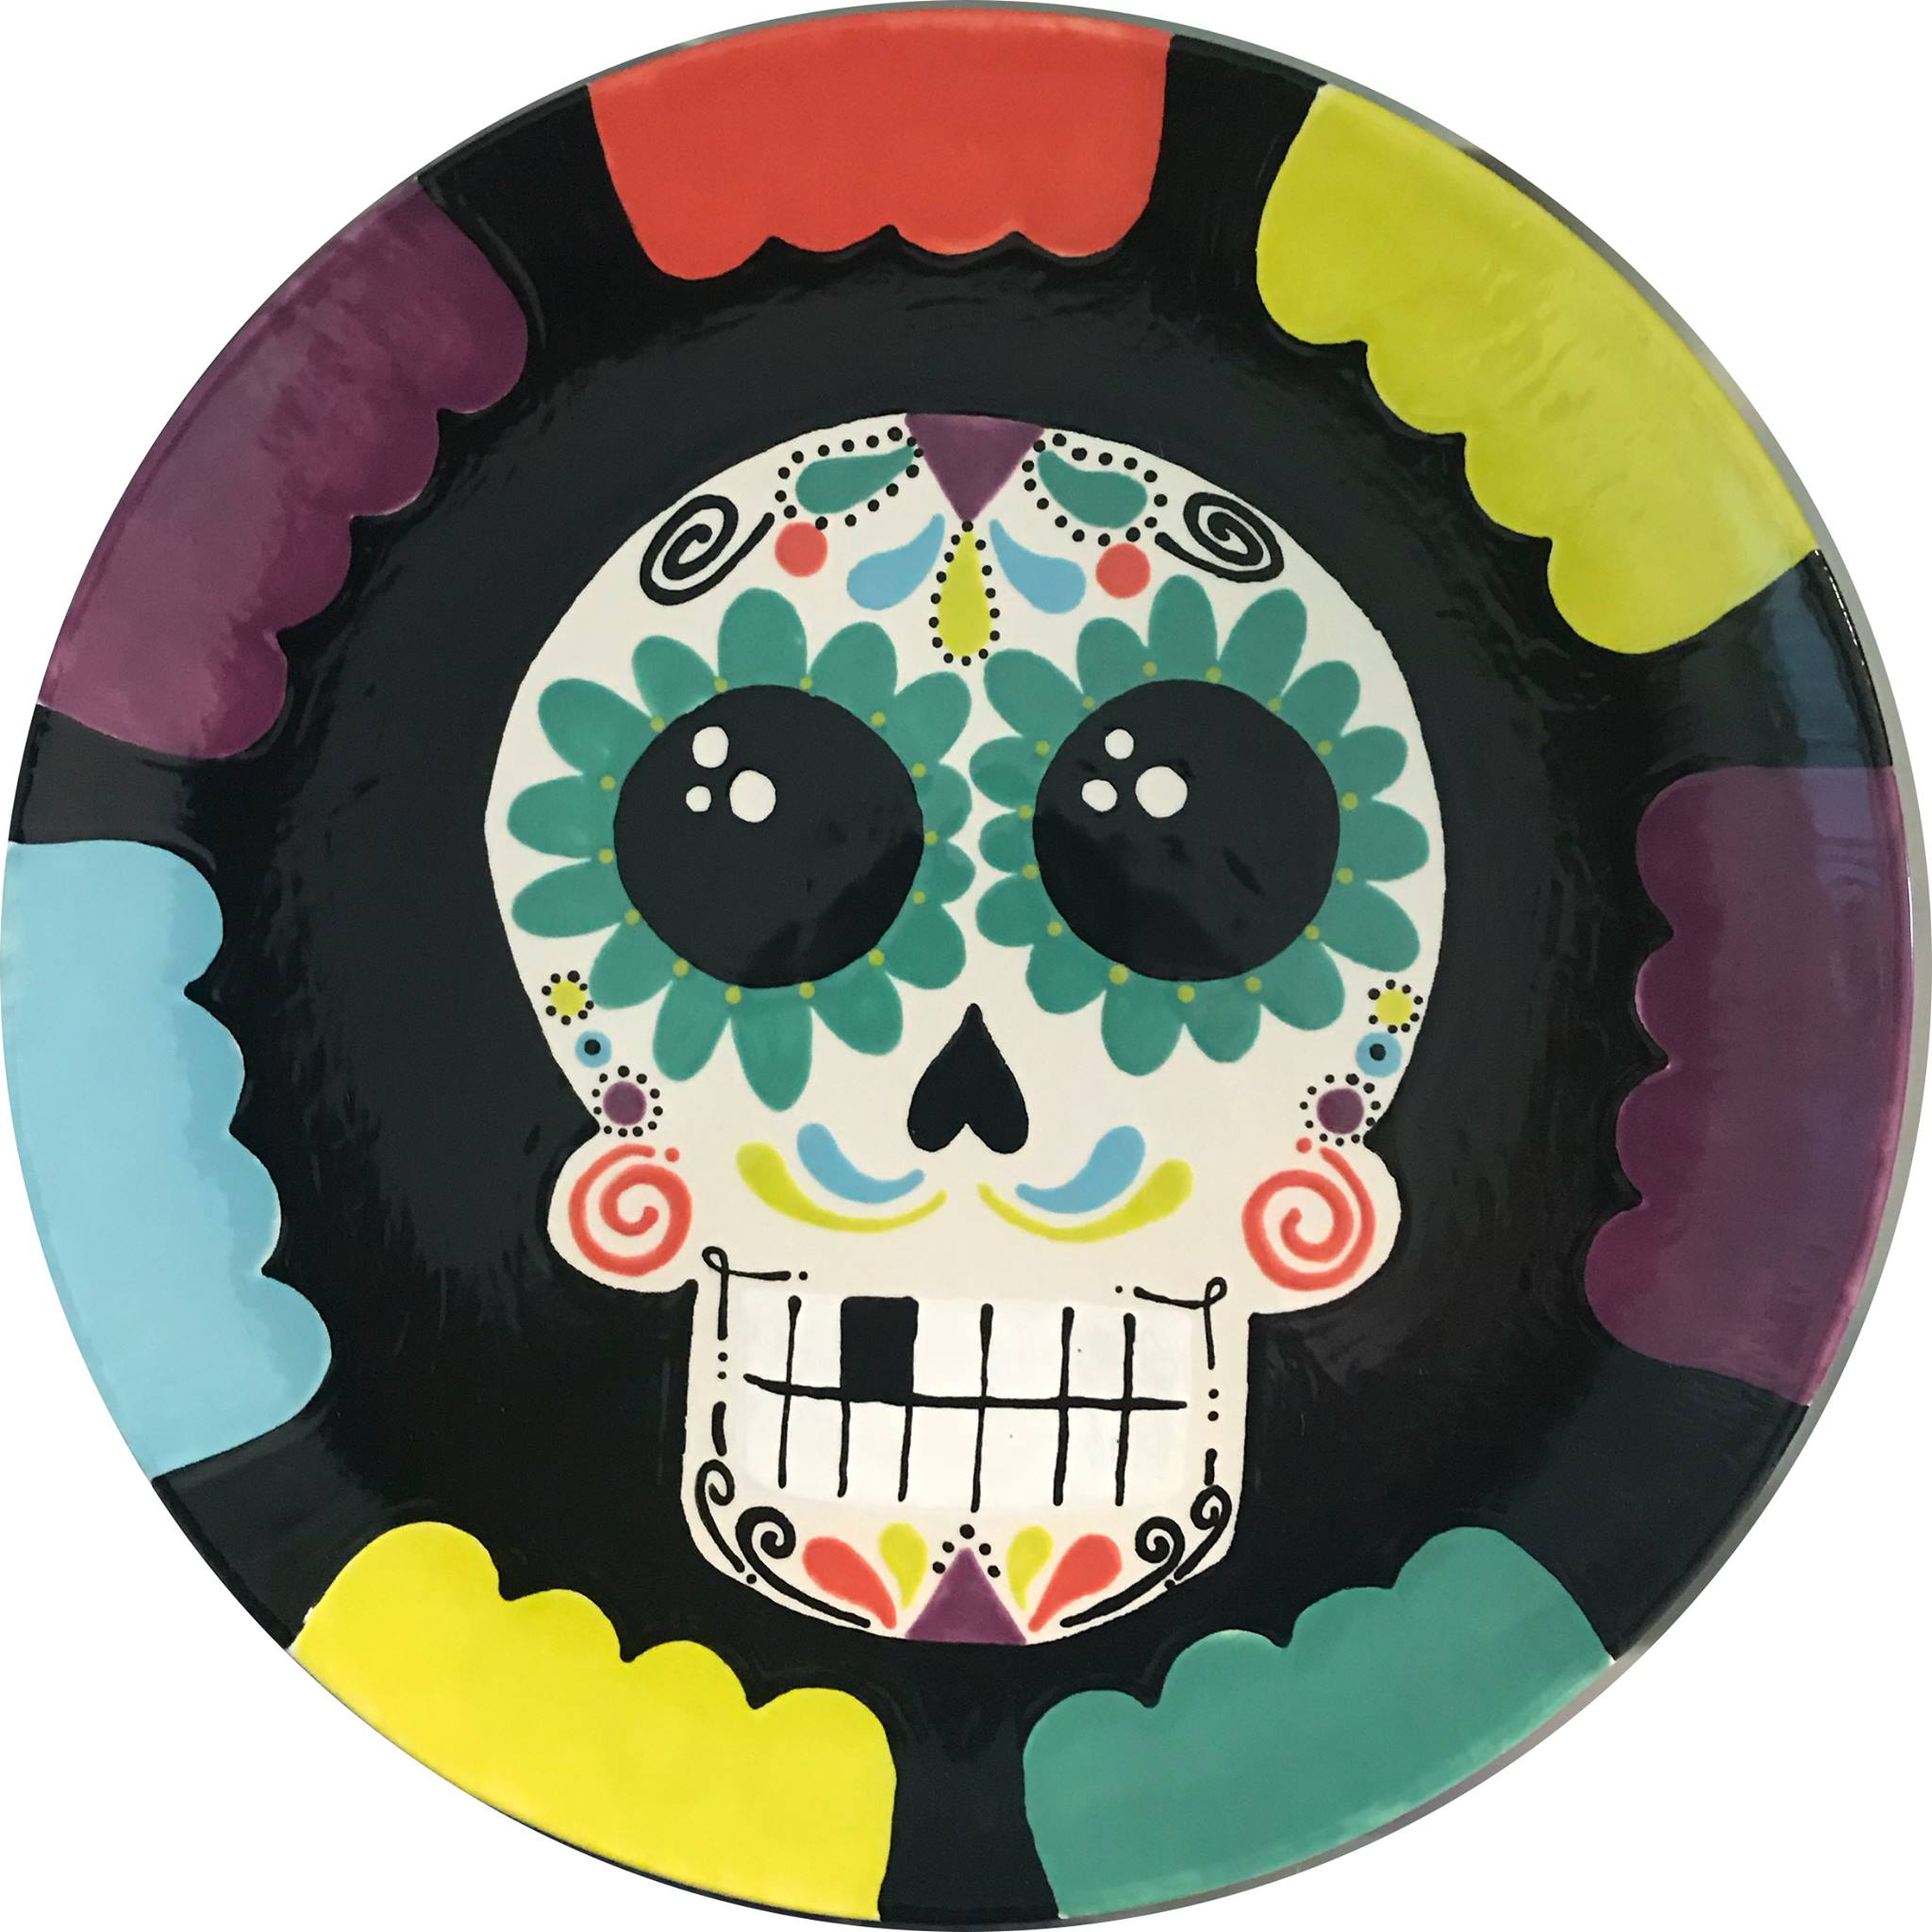 Day of The Dead style Skull plate